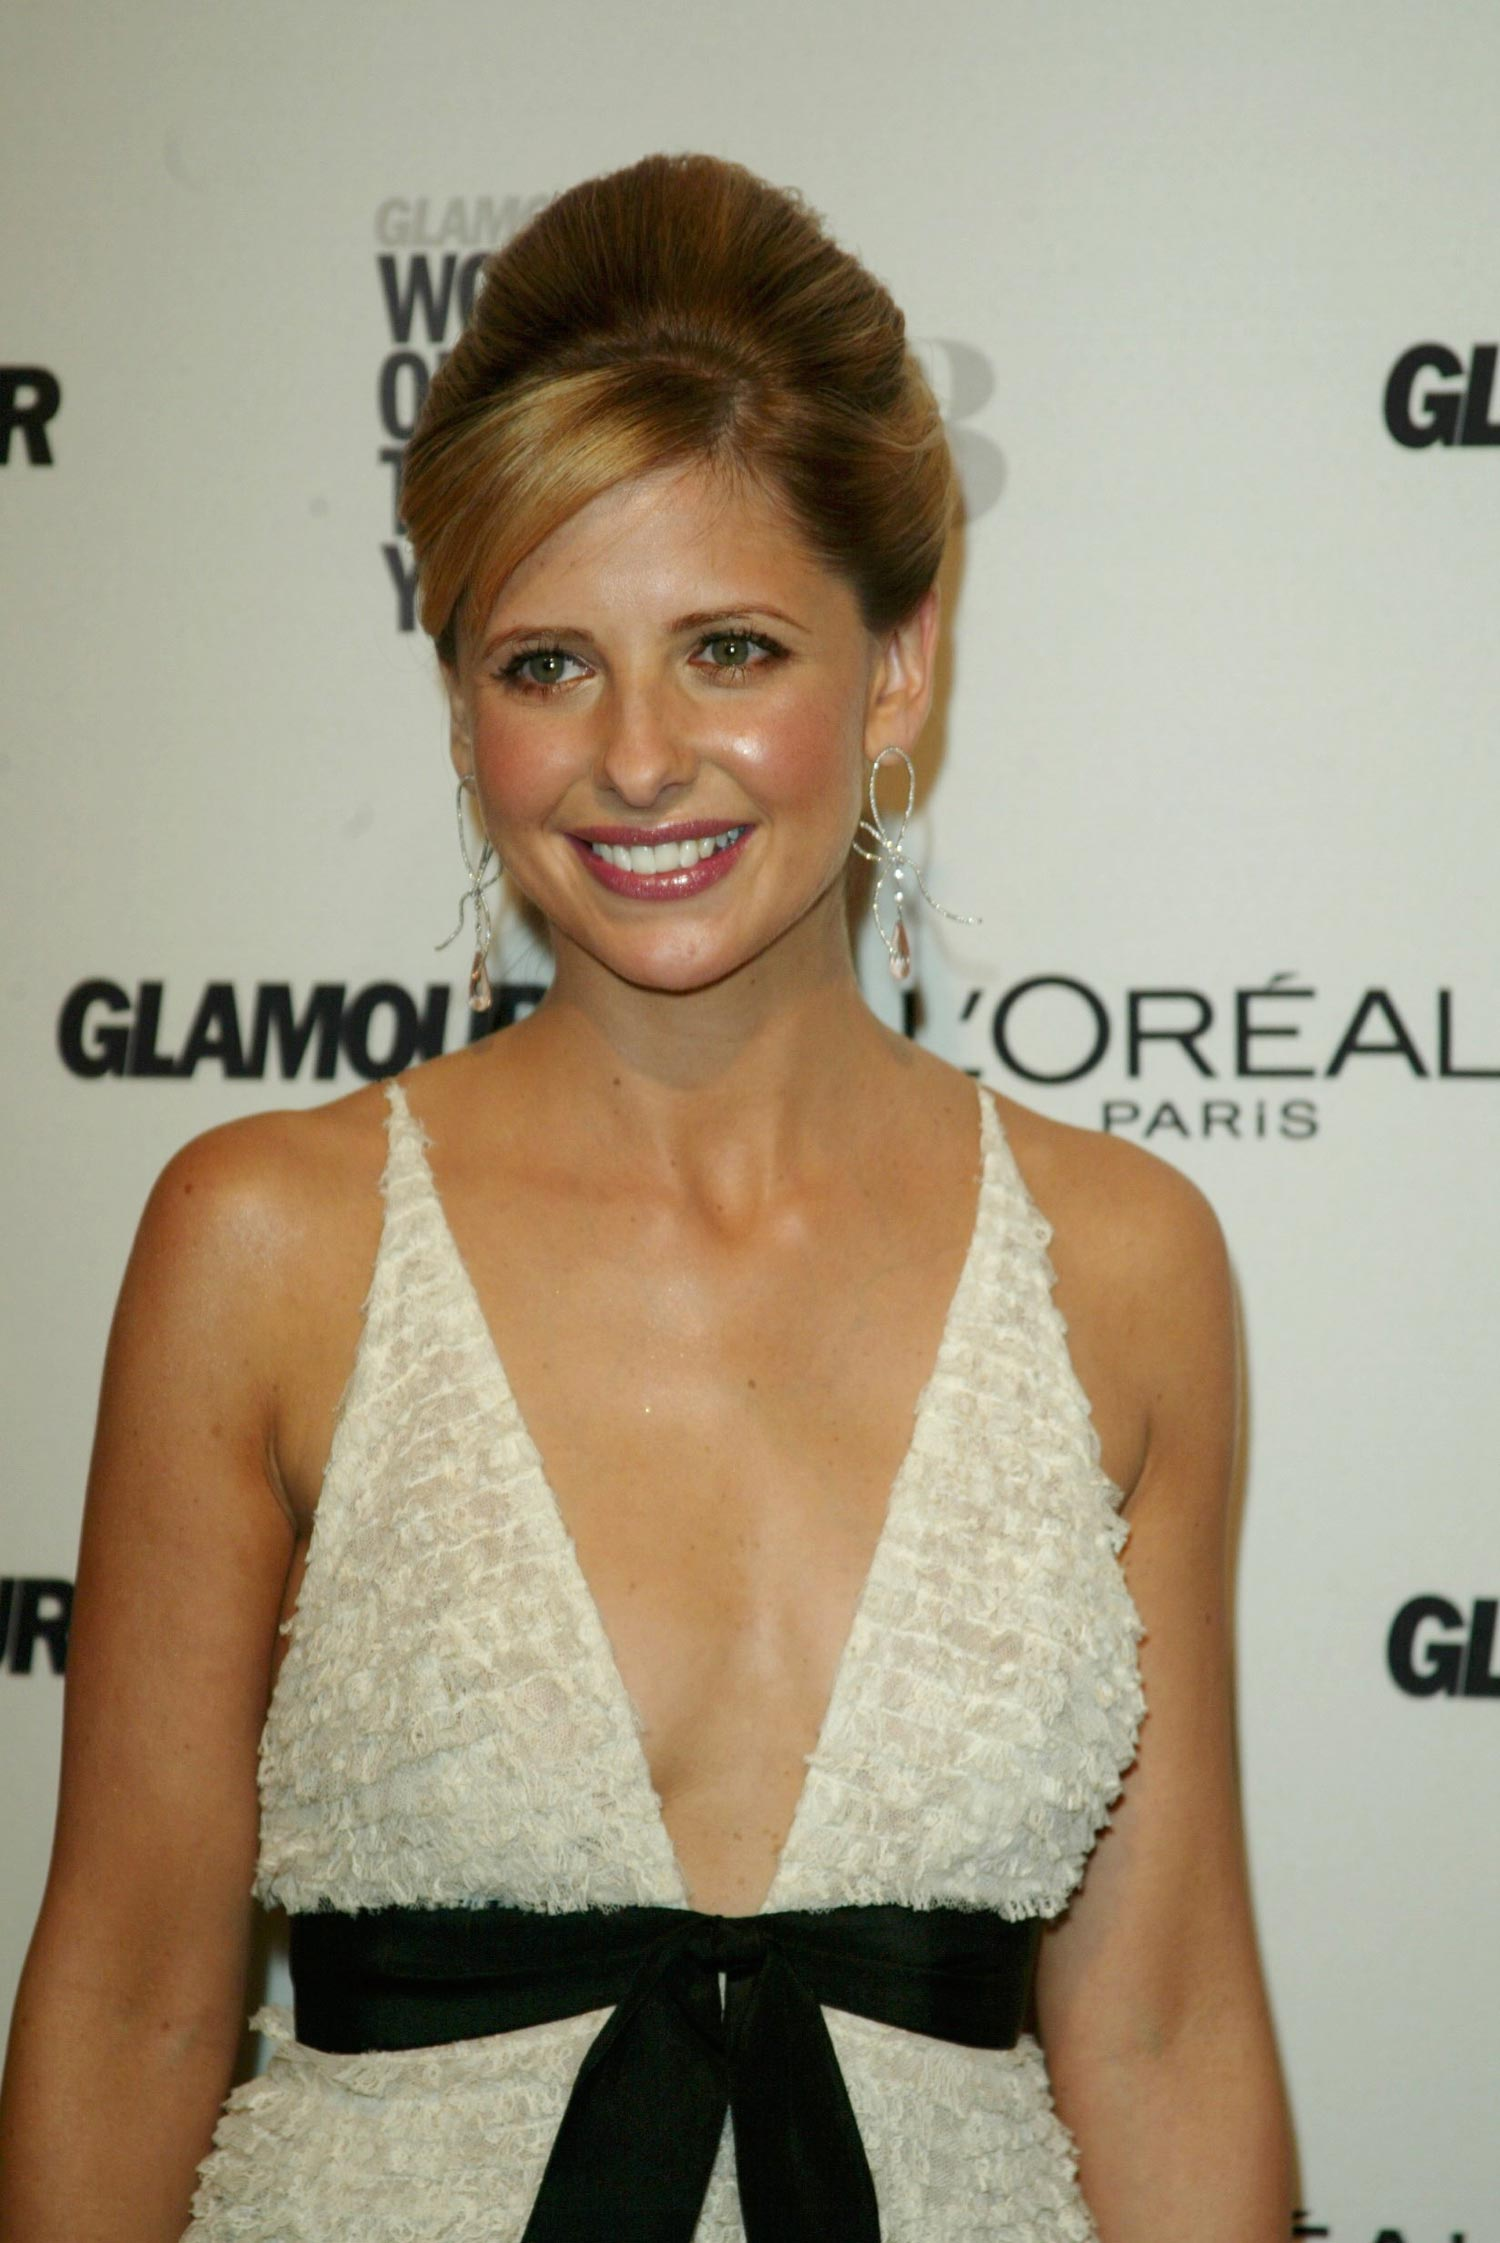 IMG/jpg/sarah-michelle-gellar-14th-glamour-mag-women-year-awards-hq-31-1500. (...)